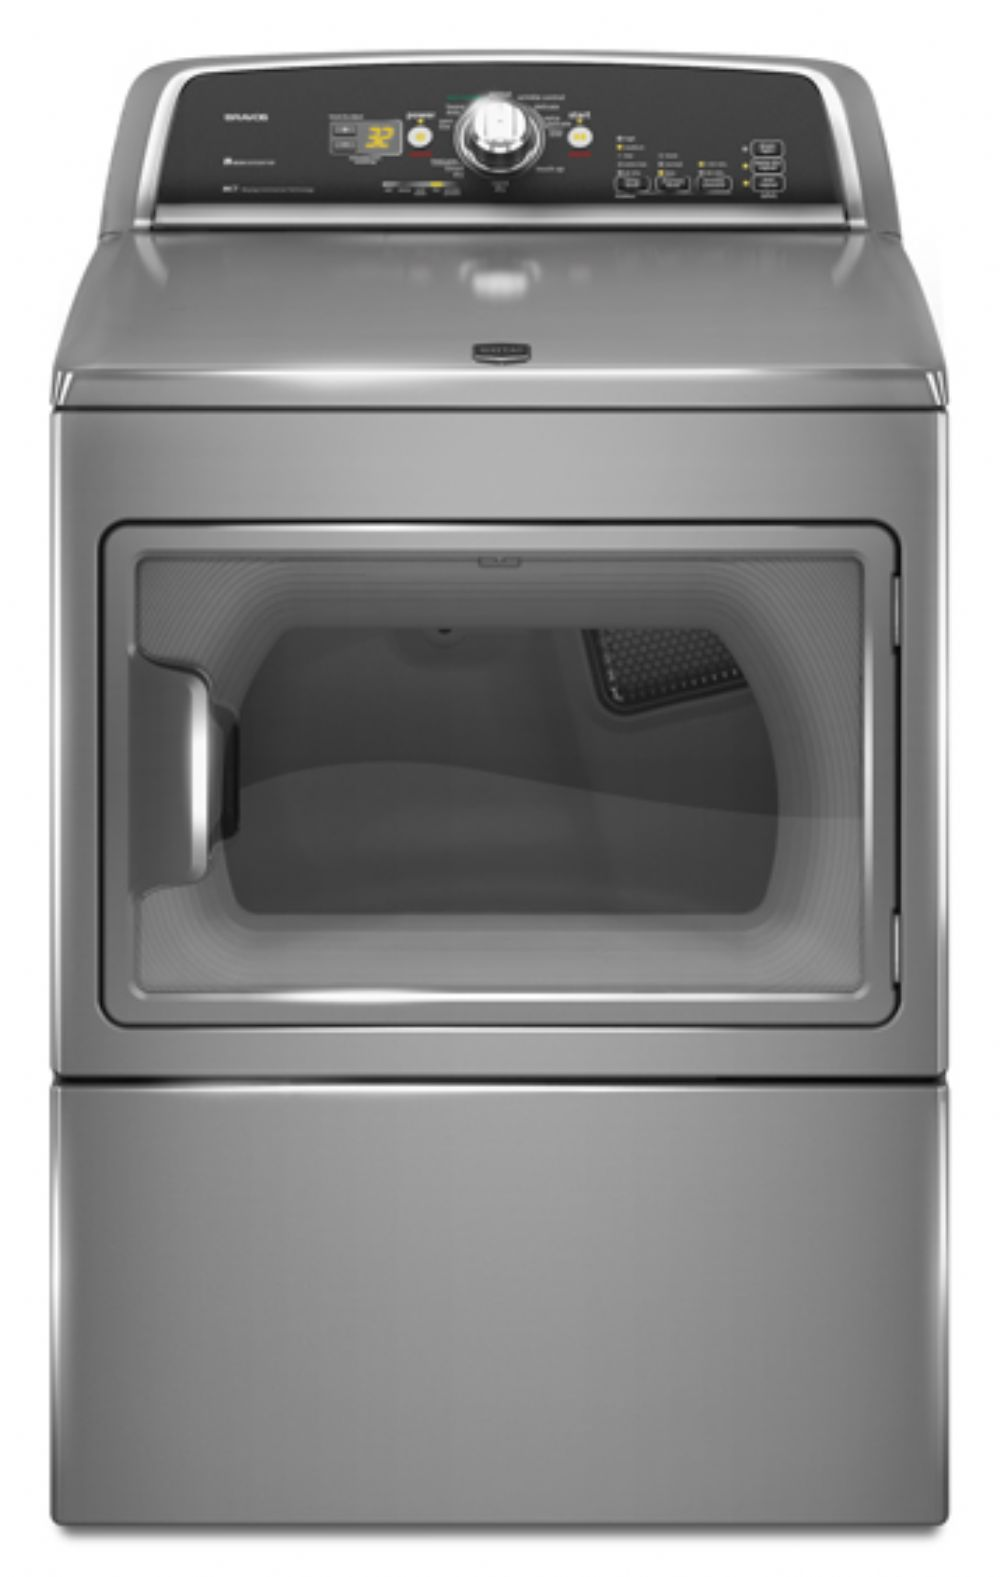 Washer reviews reviews of maytag washers - Maytag whirlpool ...